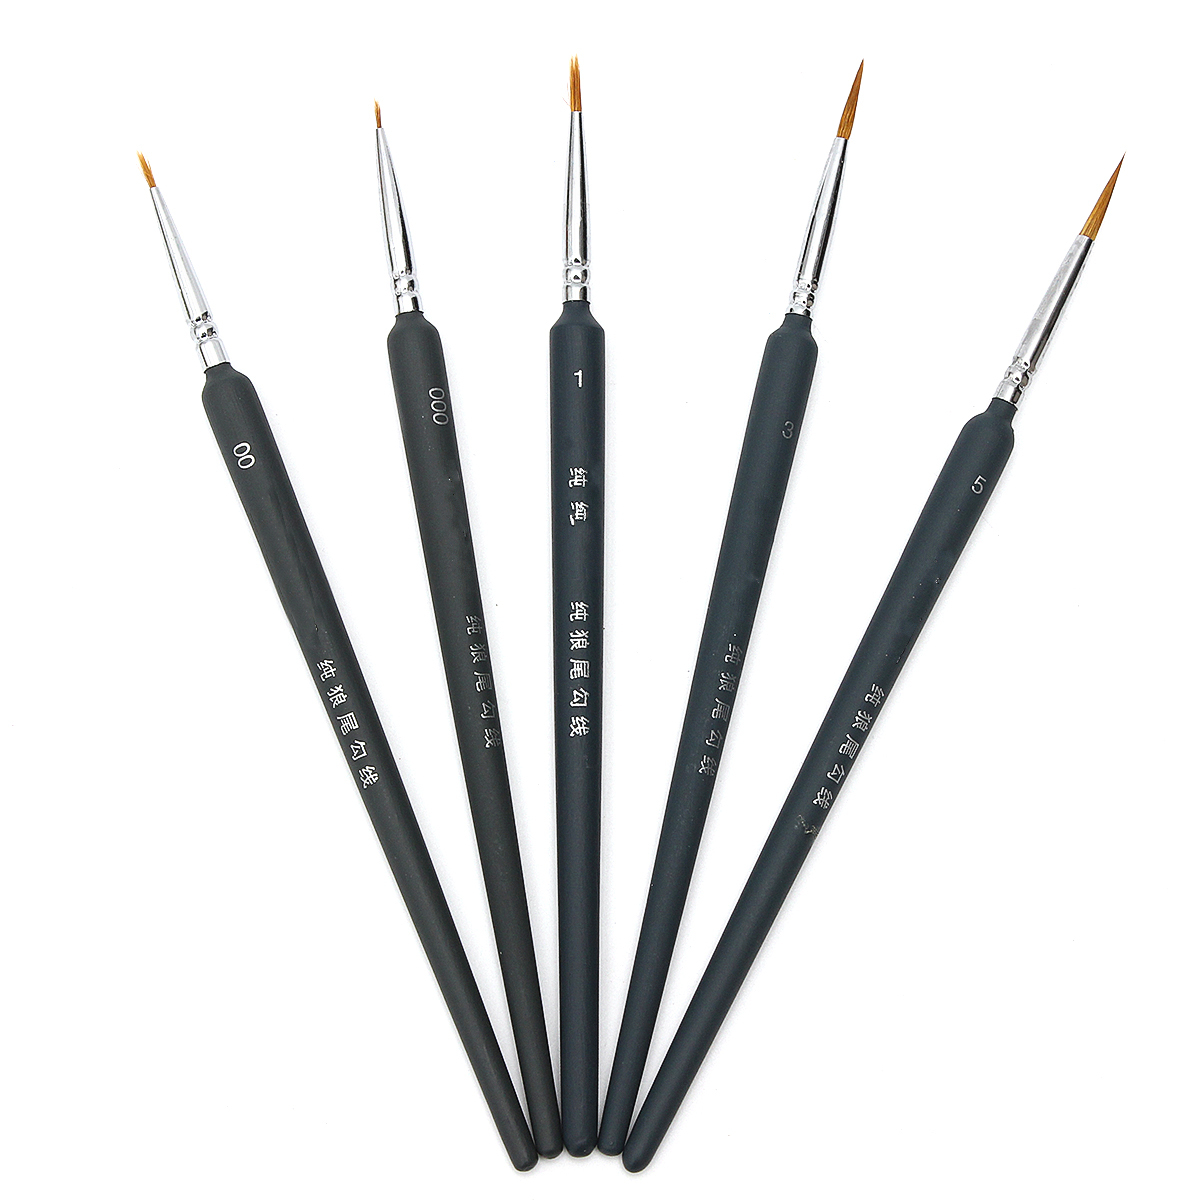 5-Pc. Artist Paint Brush Set Artist Draw Brush Round Handle Hook Line Detail Art Painting Brush